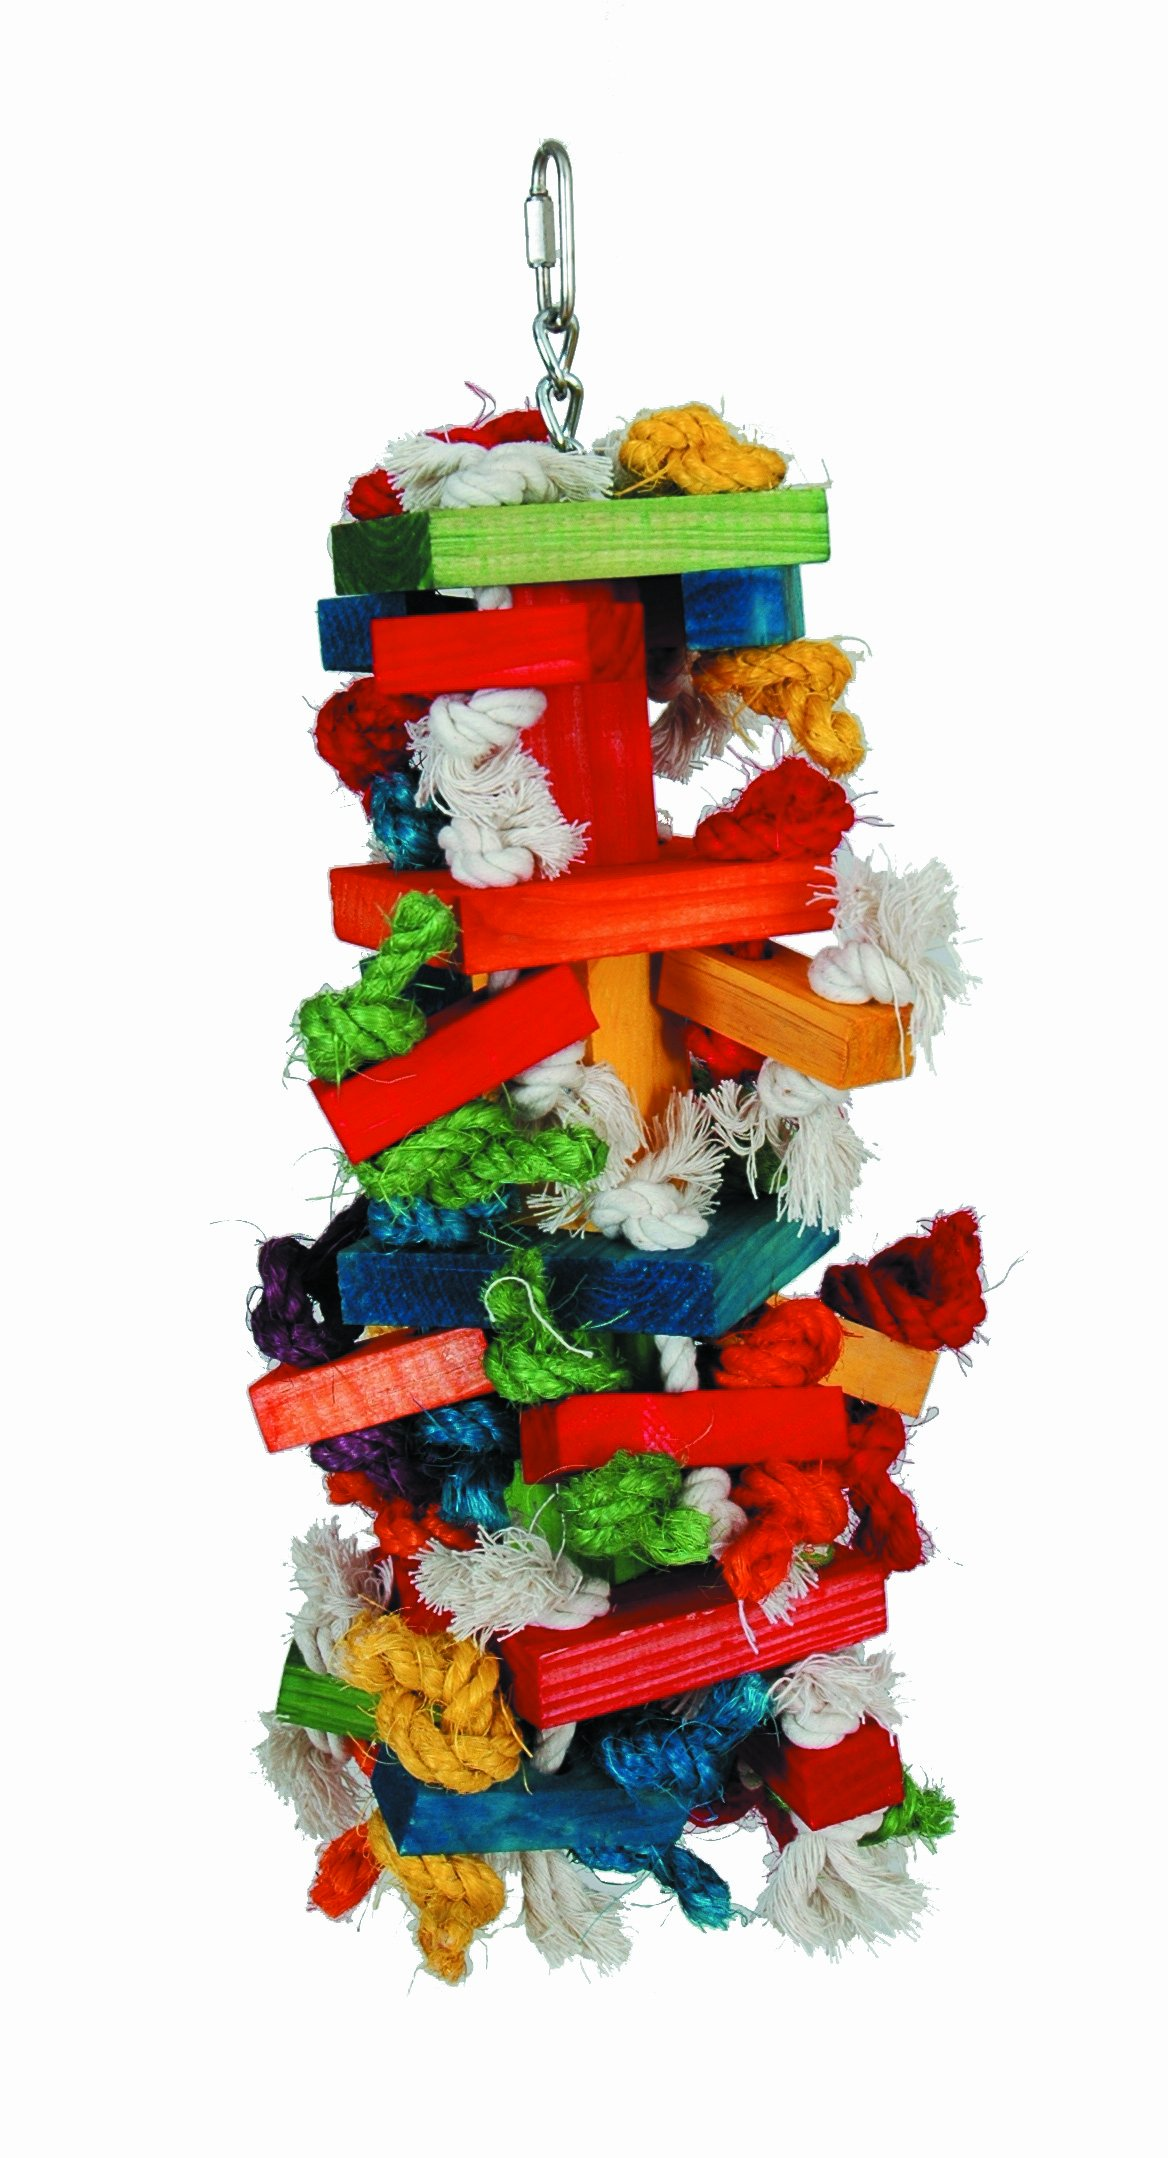 Paradise Knots &Blocks Chewing Toy, Colorful & Entertaining, Keeps Birdy Happy, Large, 16'' x 6'' x 6'' inches by Paradise Toys